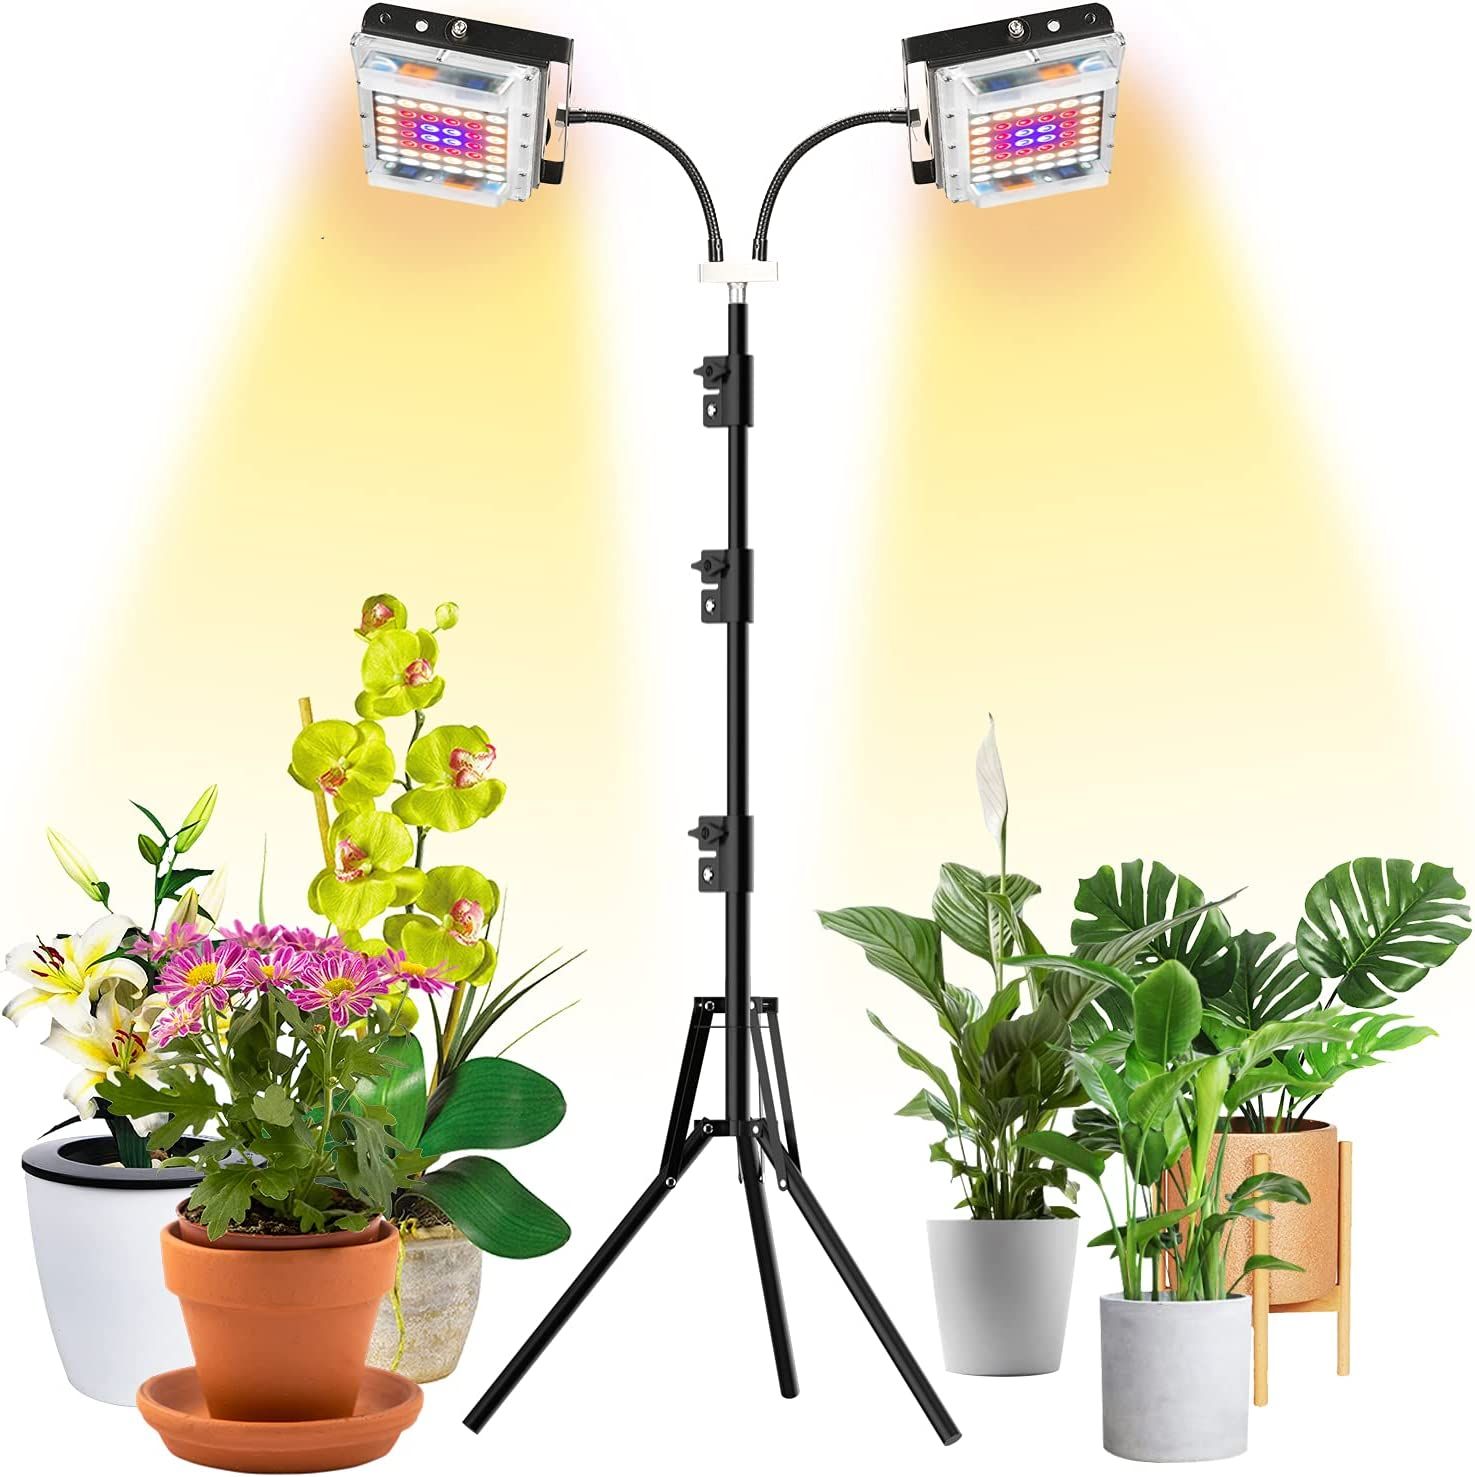 Grow Light with Stand Brand new LBW Dual Head Plan Spectrum Full Surprise price 300W LED